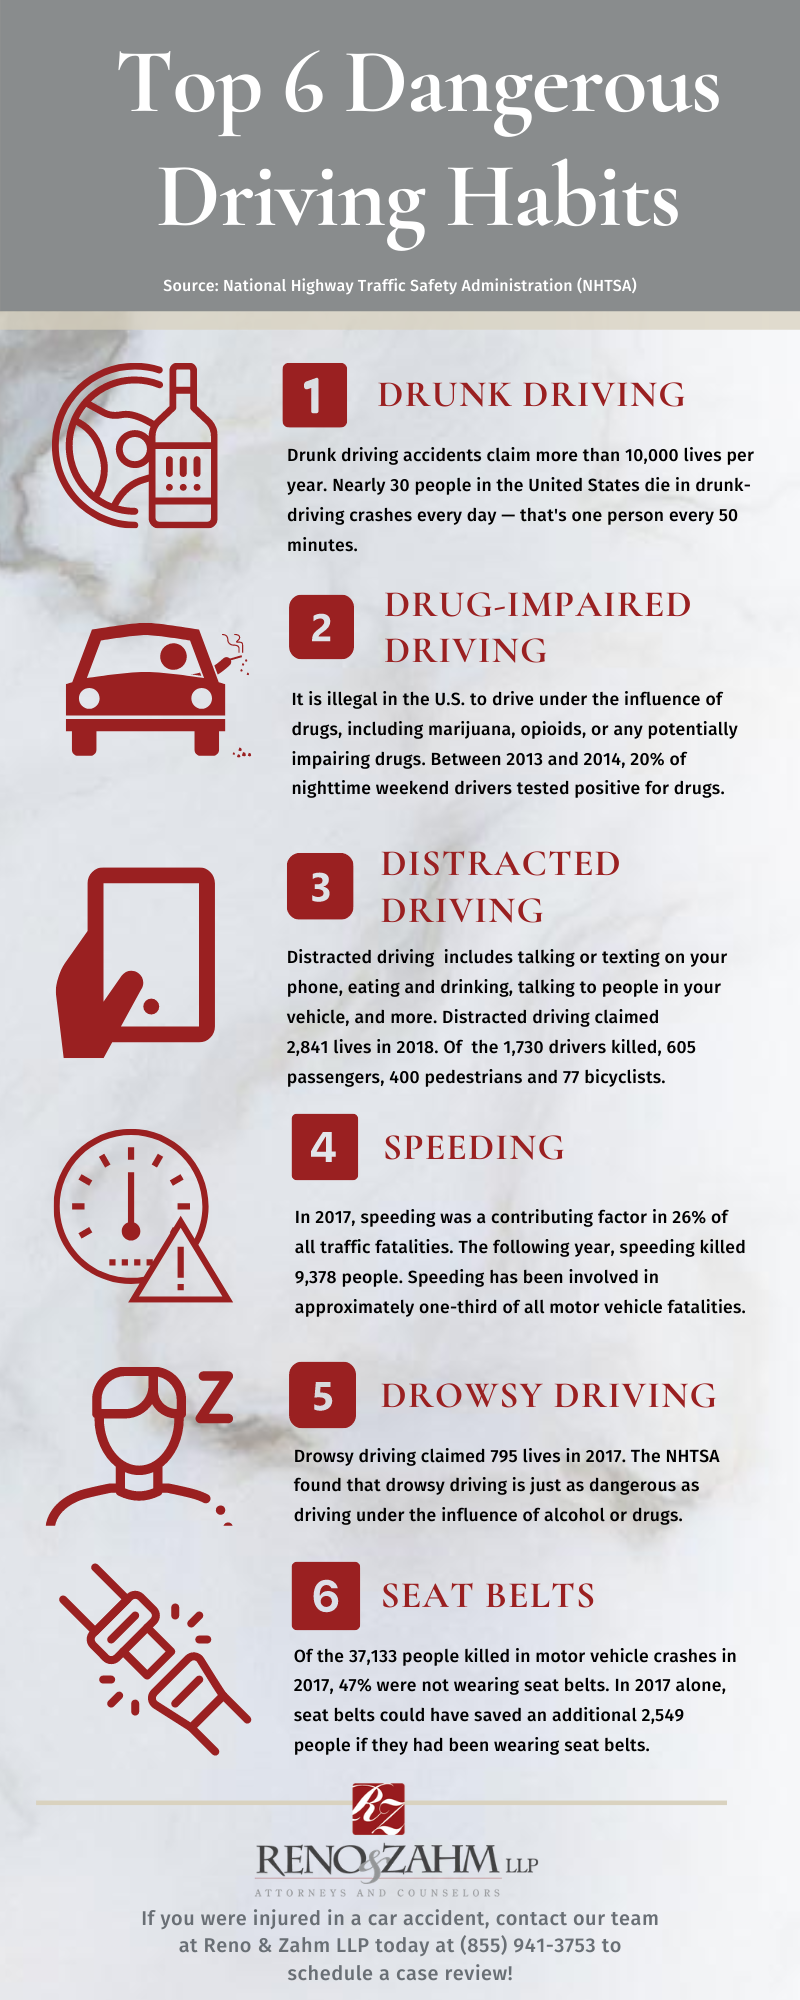 Top 6 Dangerous Driving Habits [Infographic]